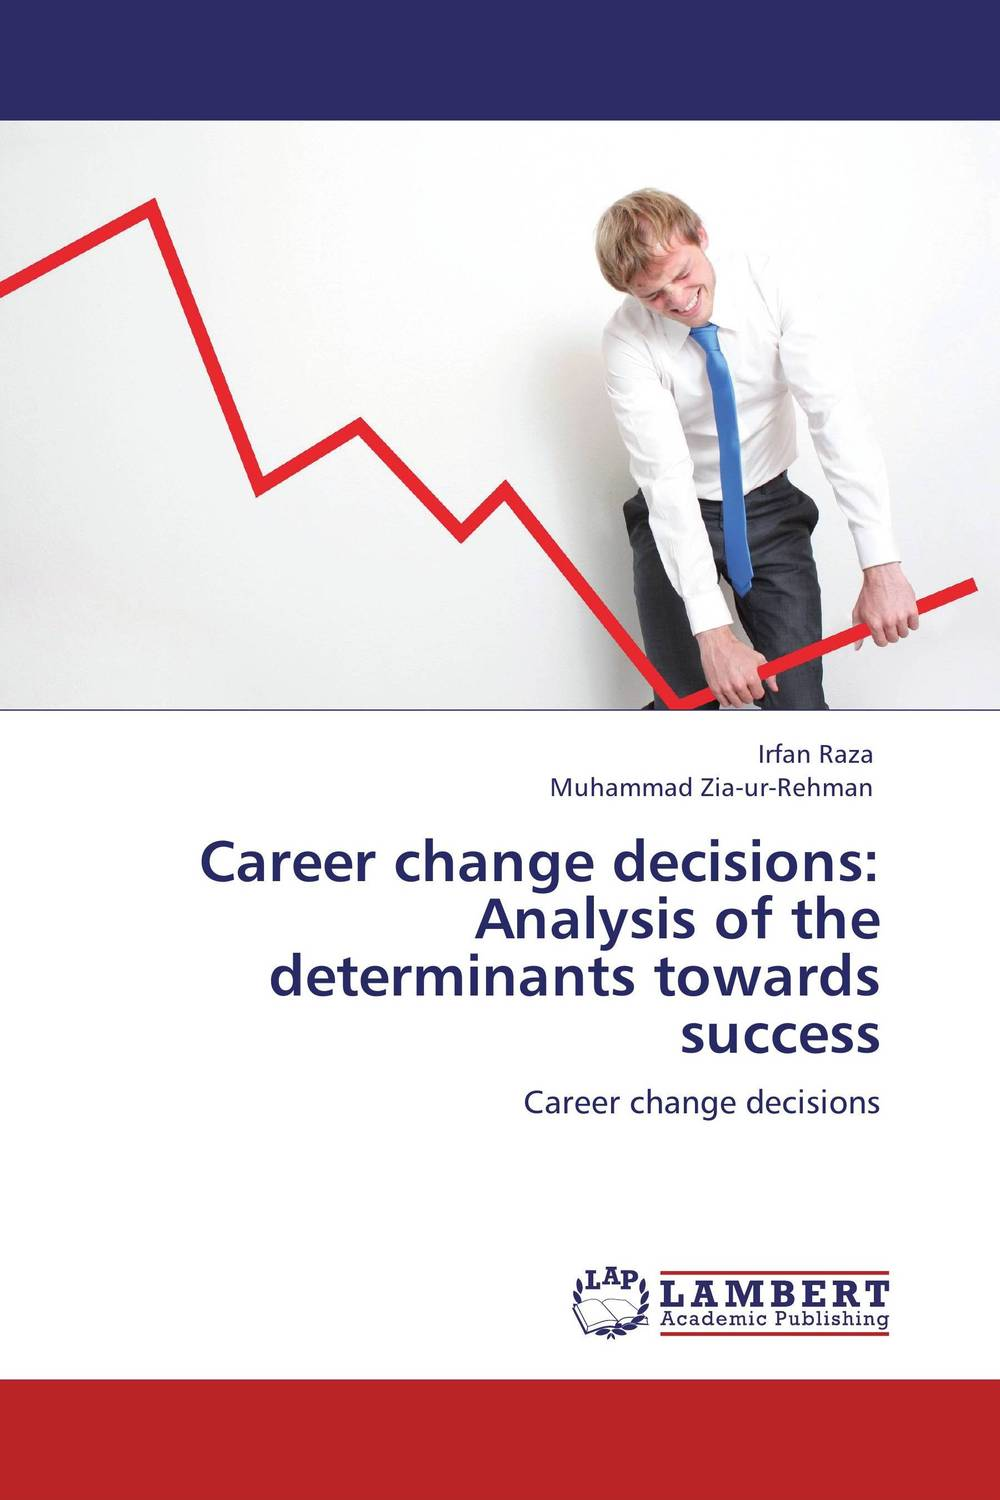 Career change decisions: Analysis of the determinants towards success